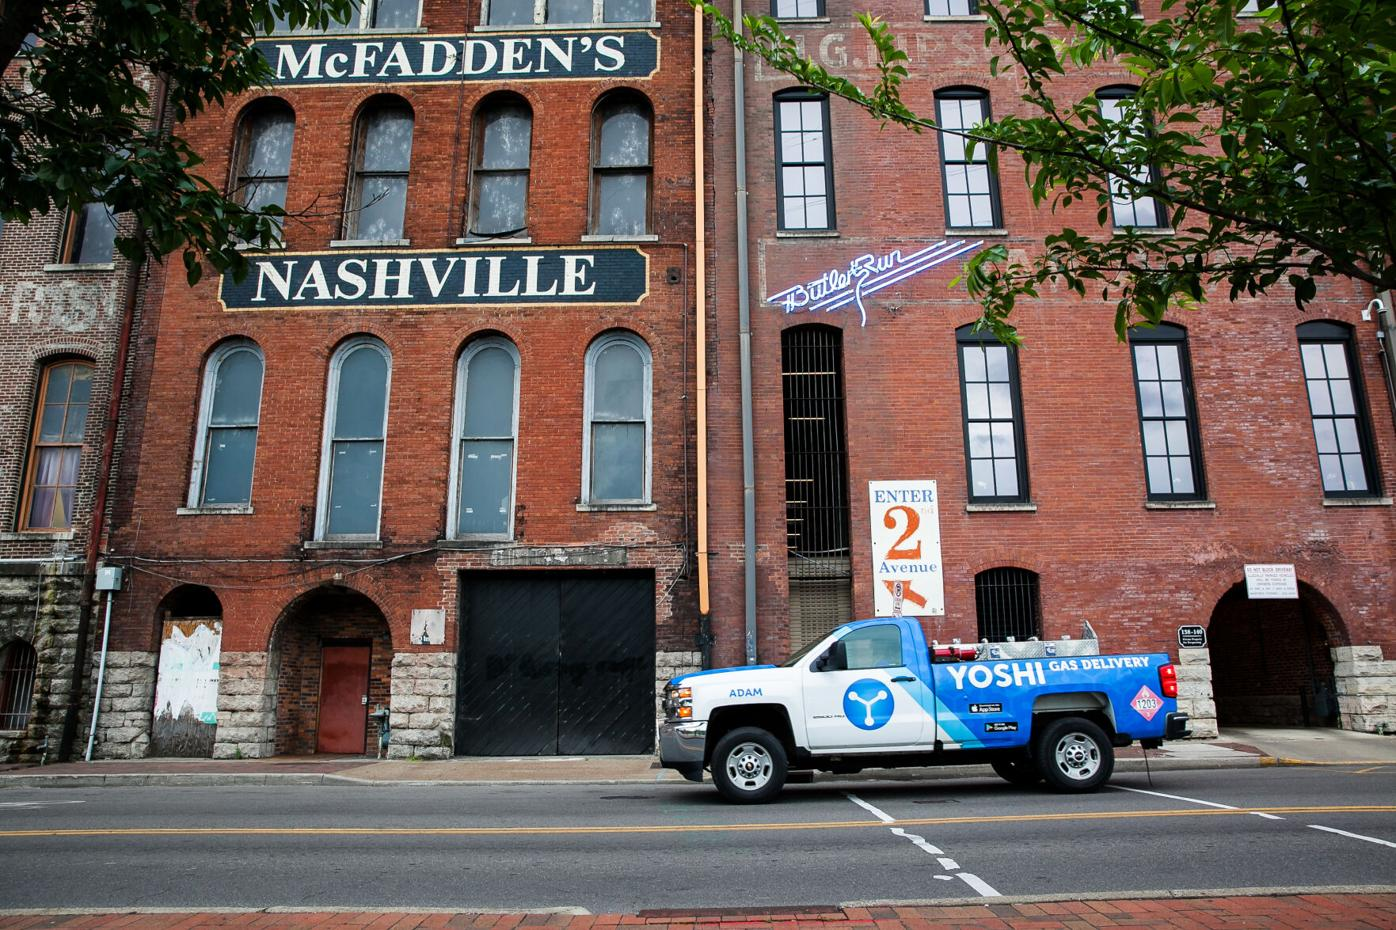 Yoshi Fuel has relocated its headquarters to Nashville.